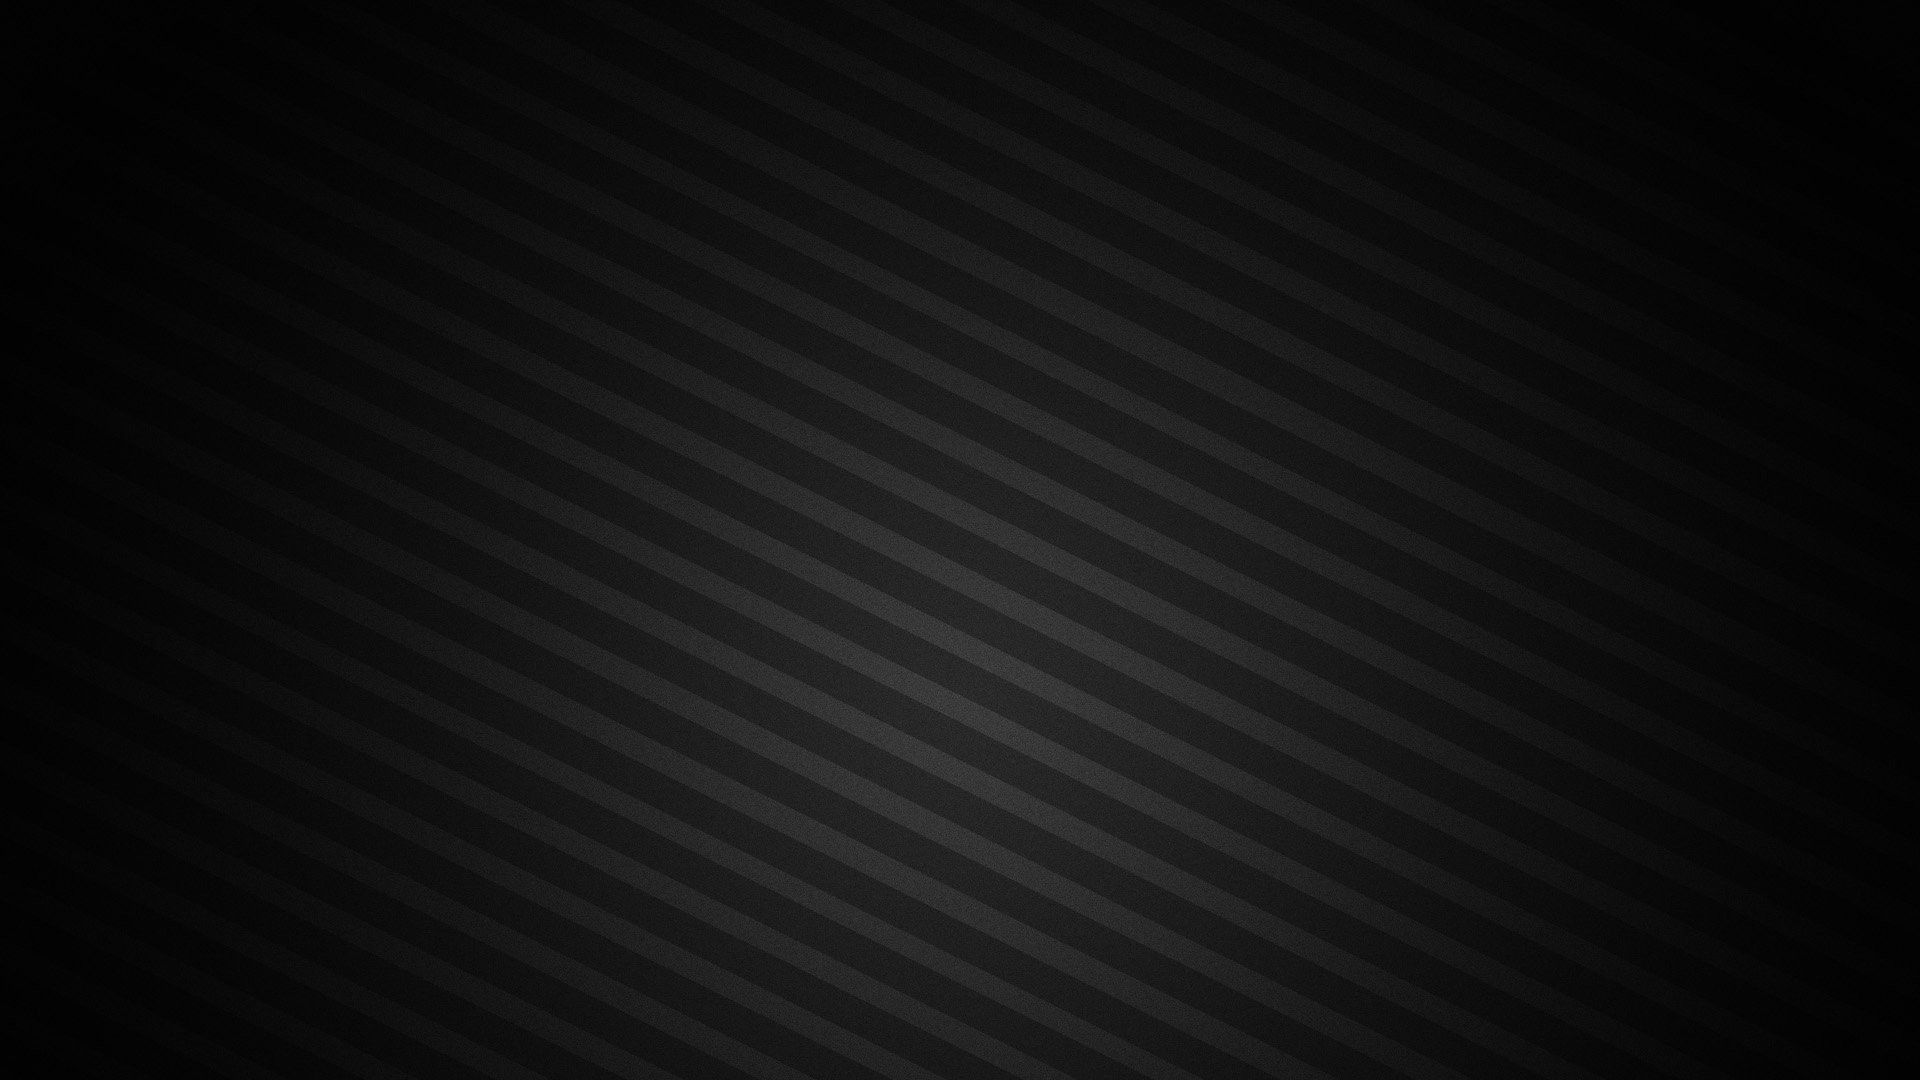 general 1920x1080 black black background stripes | dark/black